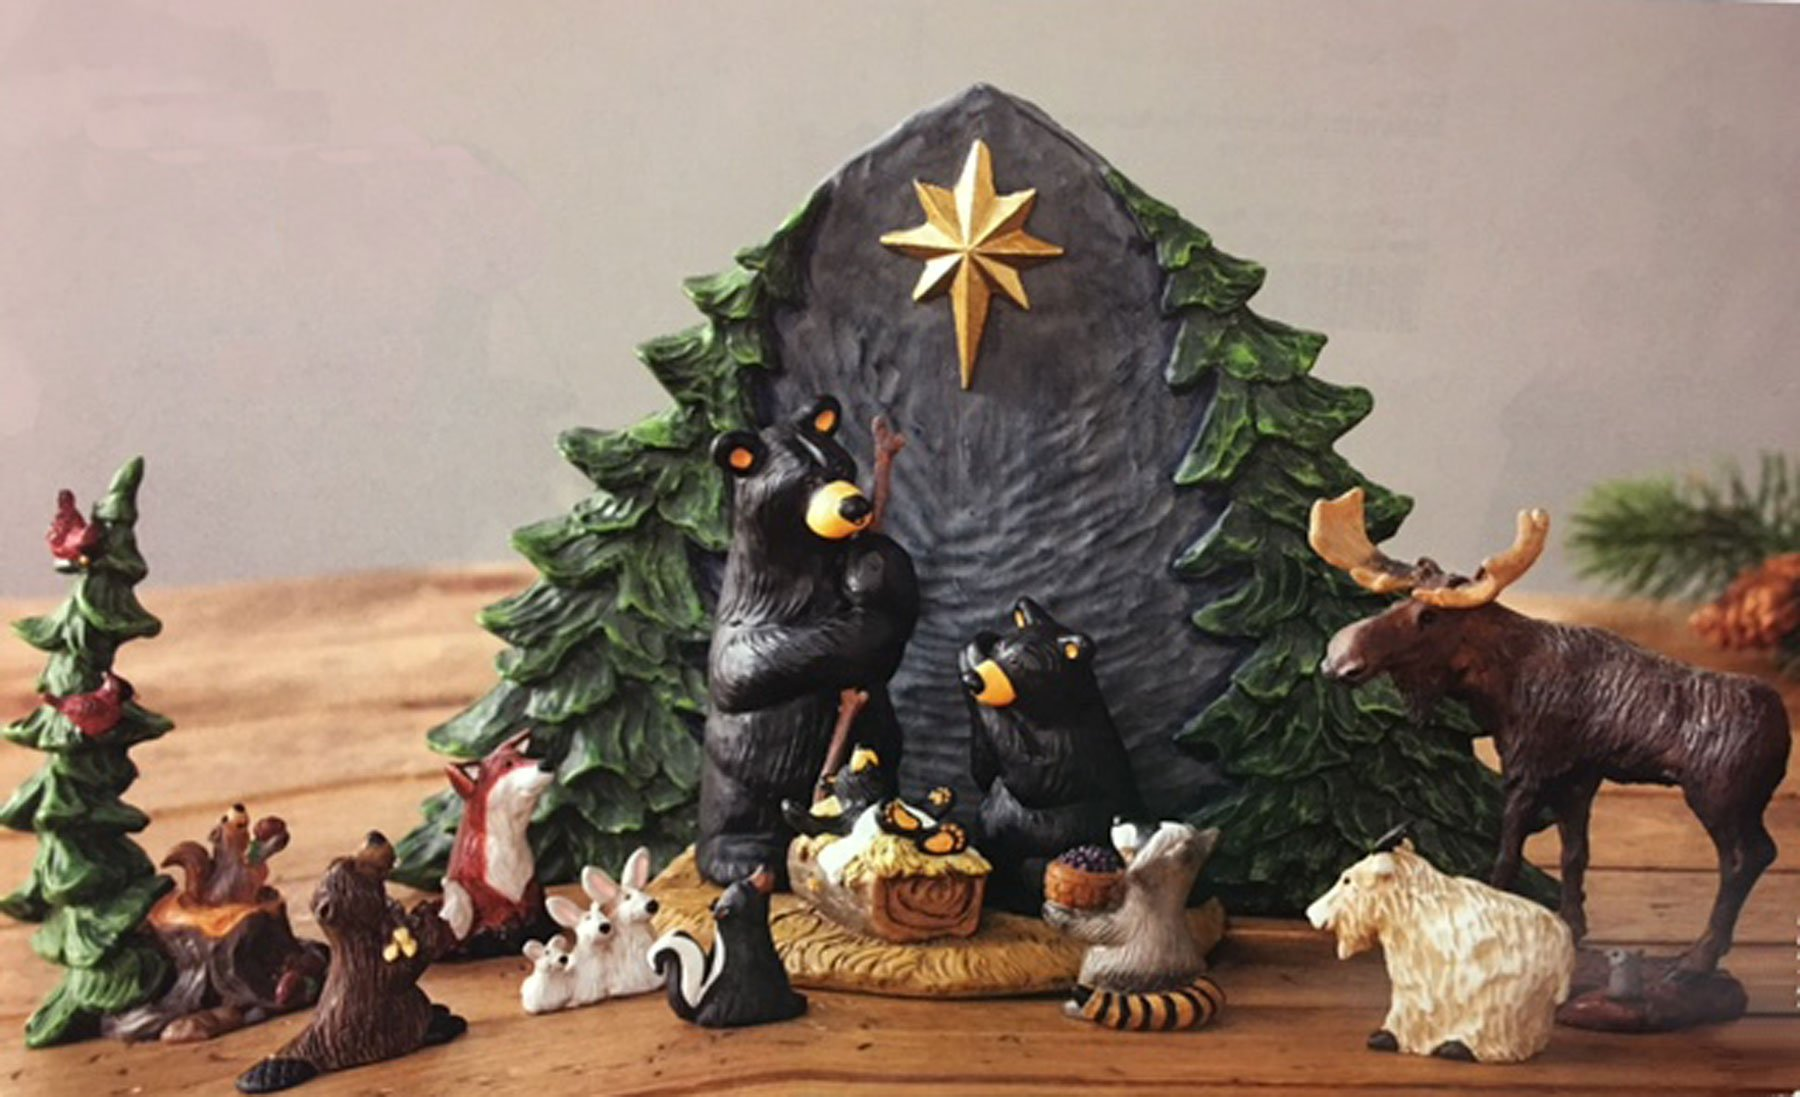 Bearfoots Bears 9 Pc Beartivity Forest Nativity with Forest Friends & Gift Bearers